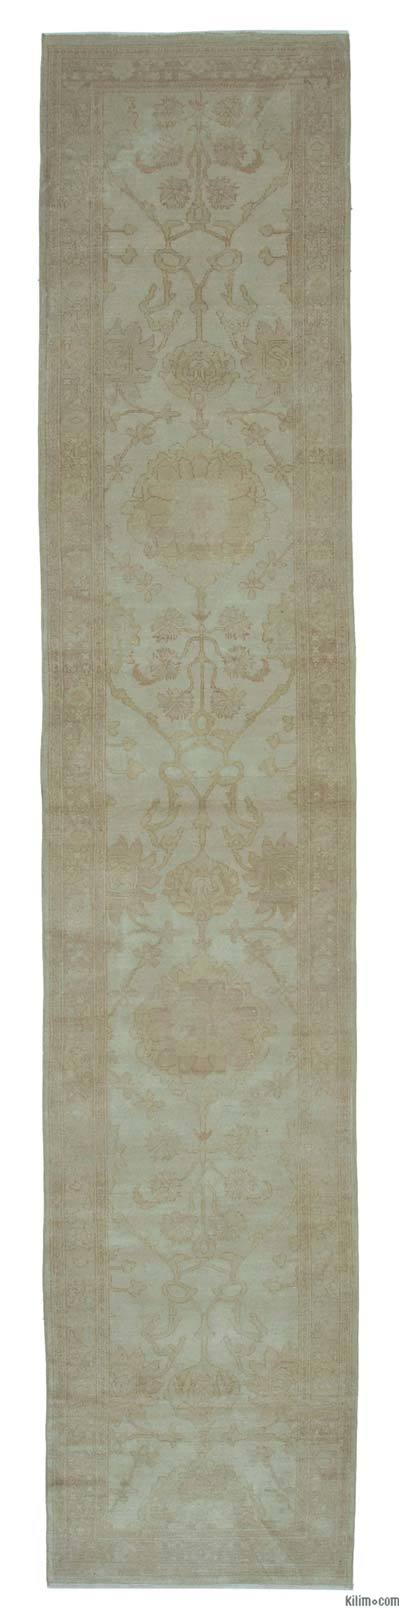 "Beige New Oushak Runner Rug - 2' 7"" x 13' 6"" (31 in. x 162 in.)"